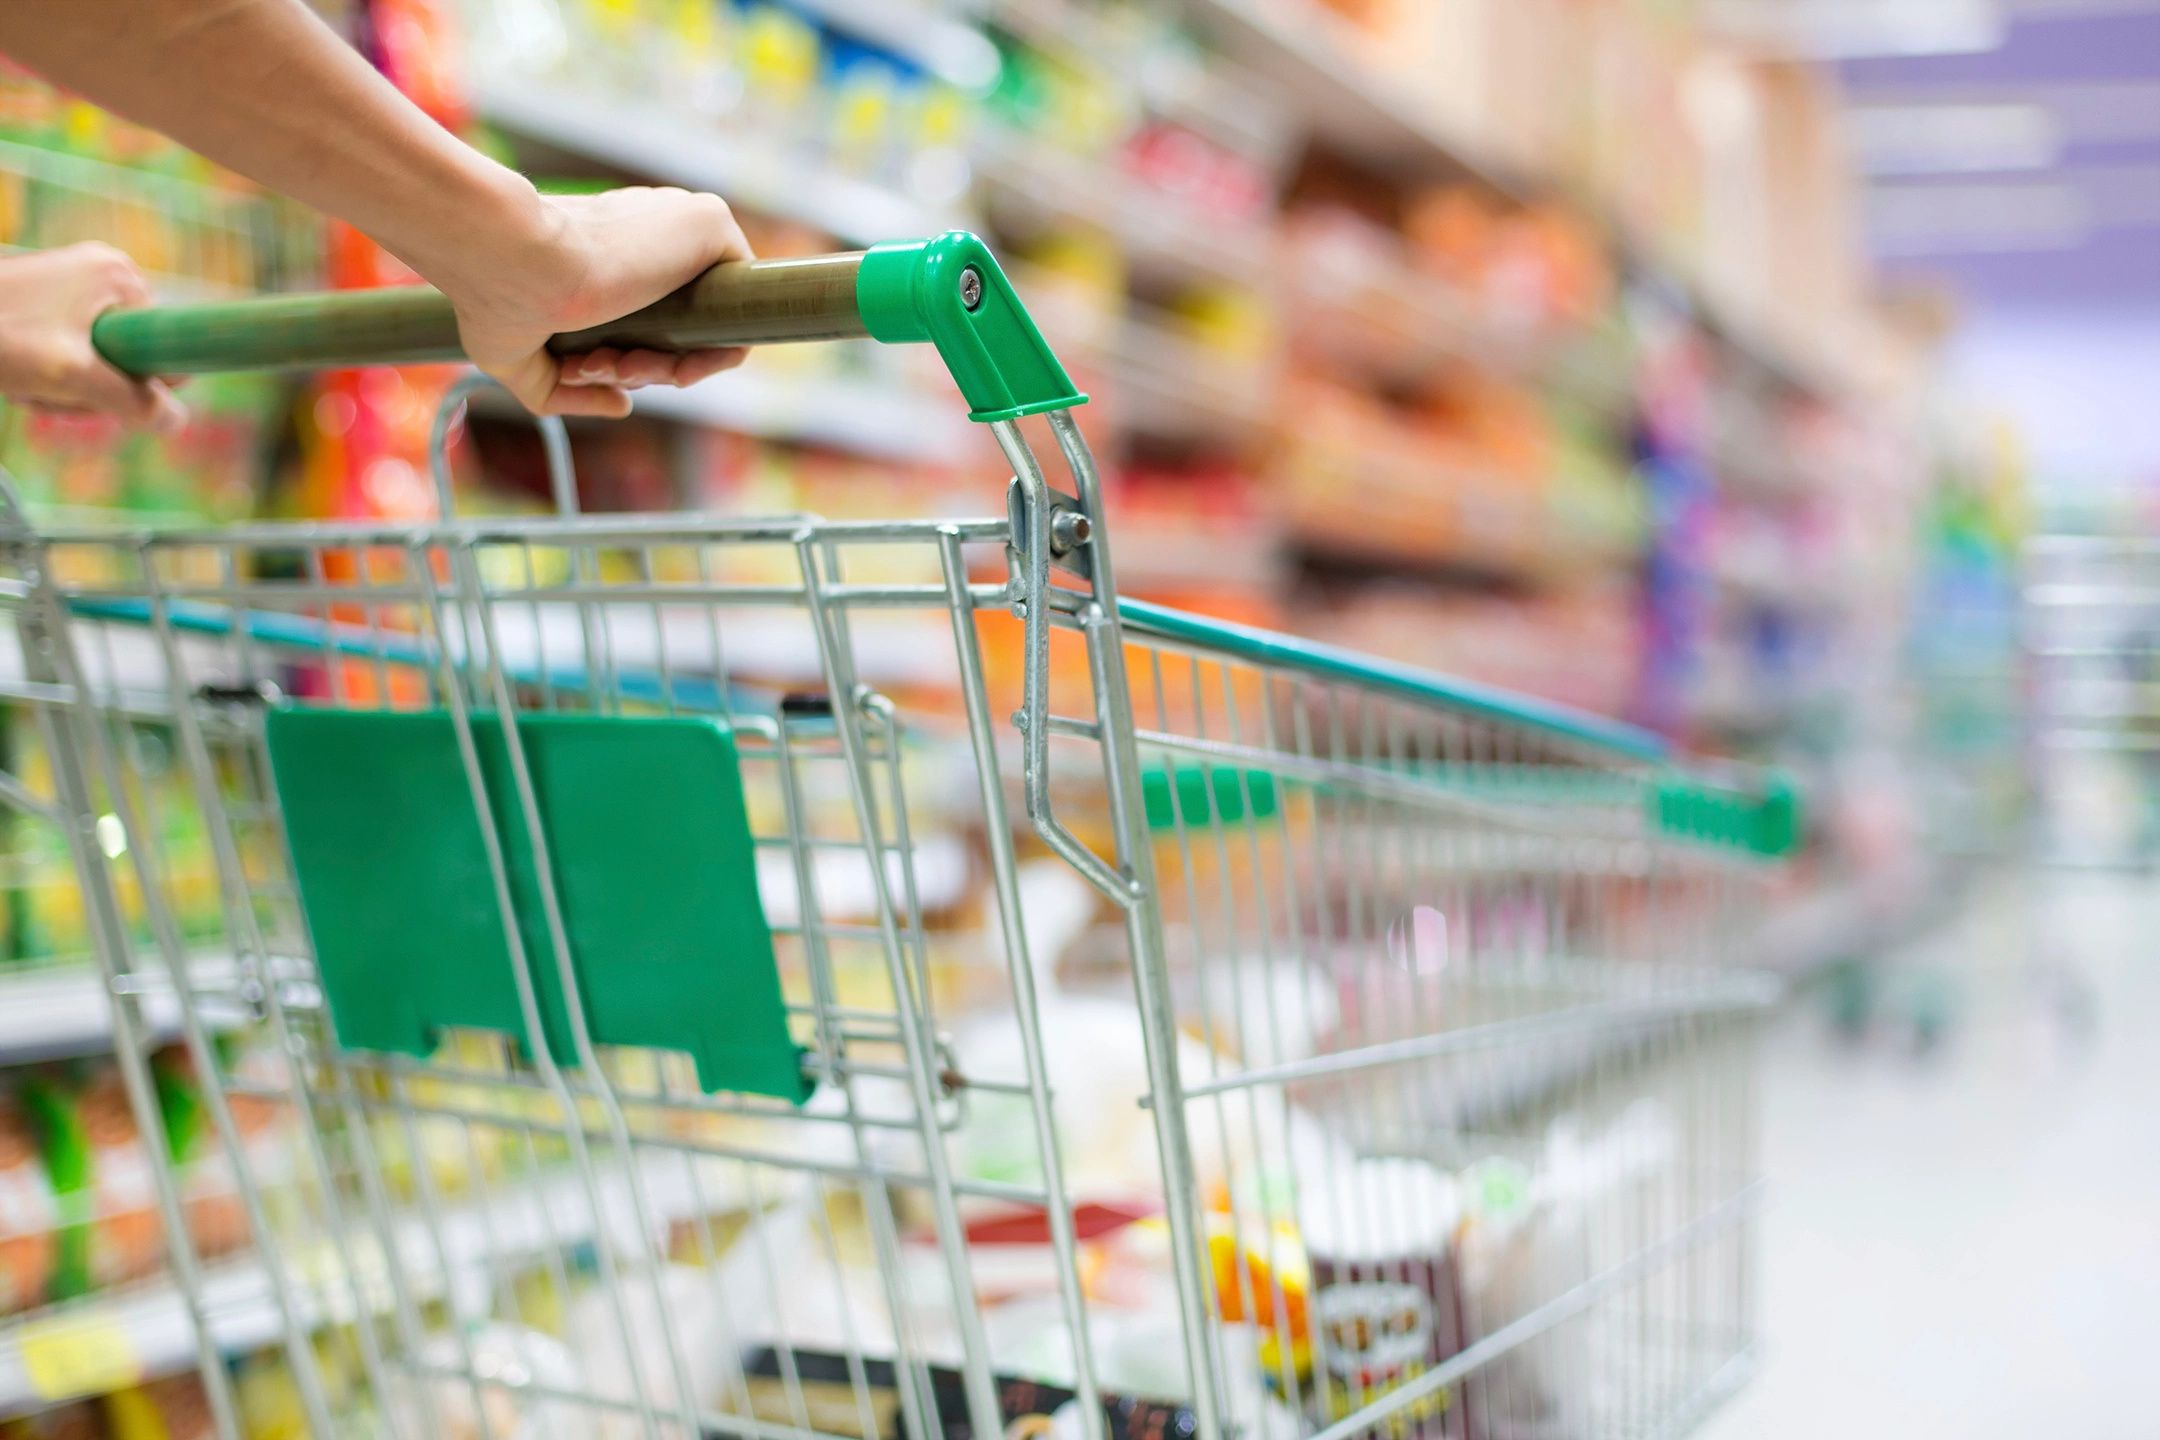 Image representing DC widow blog writer Marjorie Brimley pushing a shopping cart in a grocery store